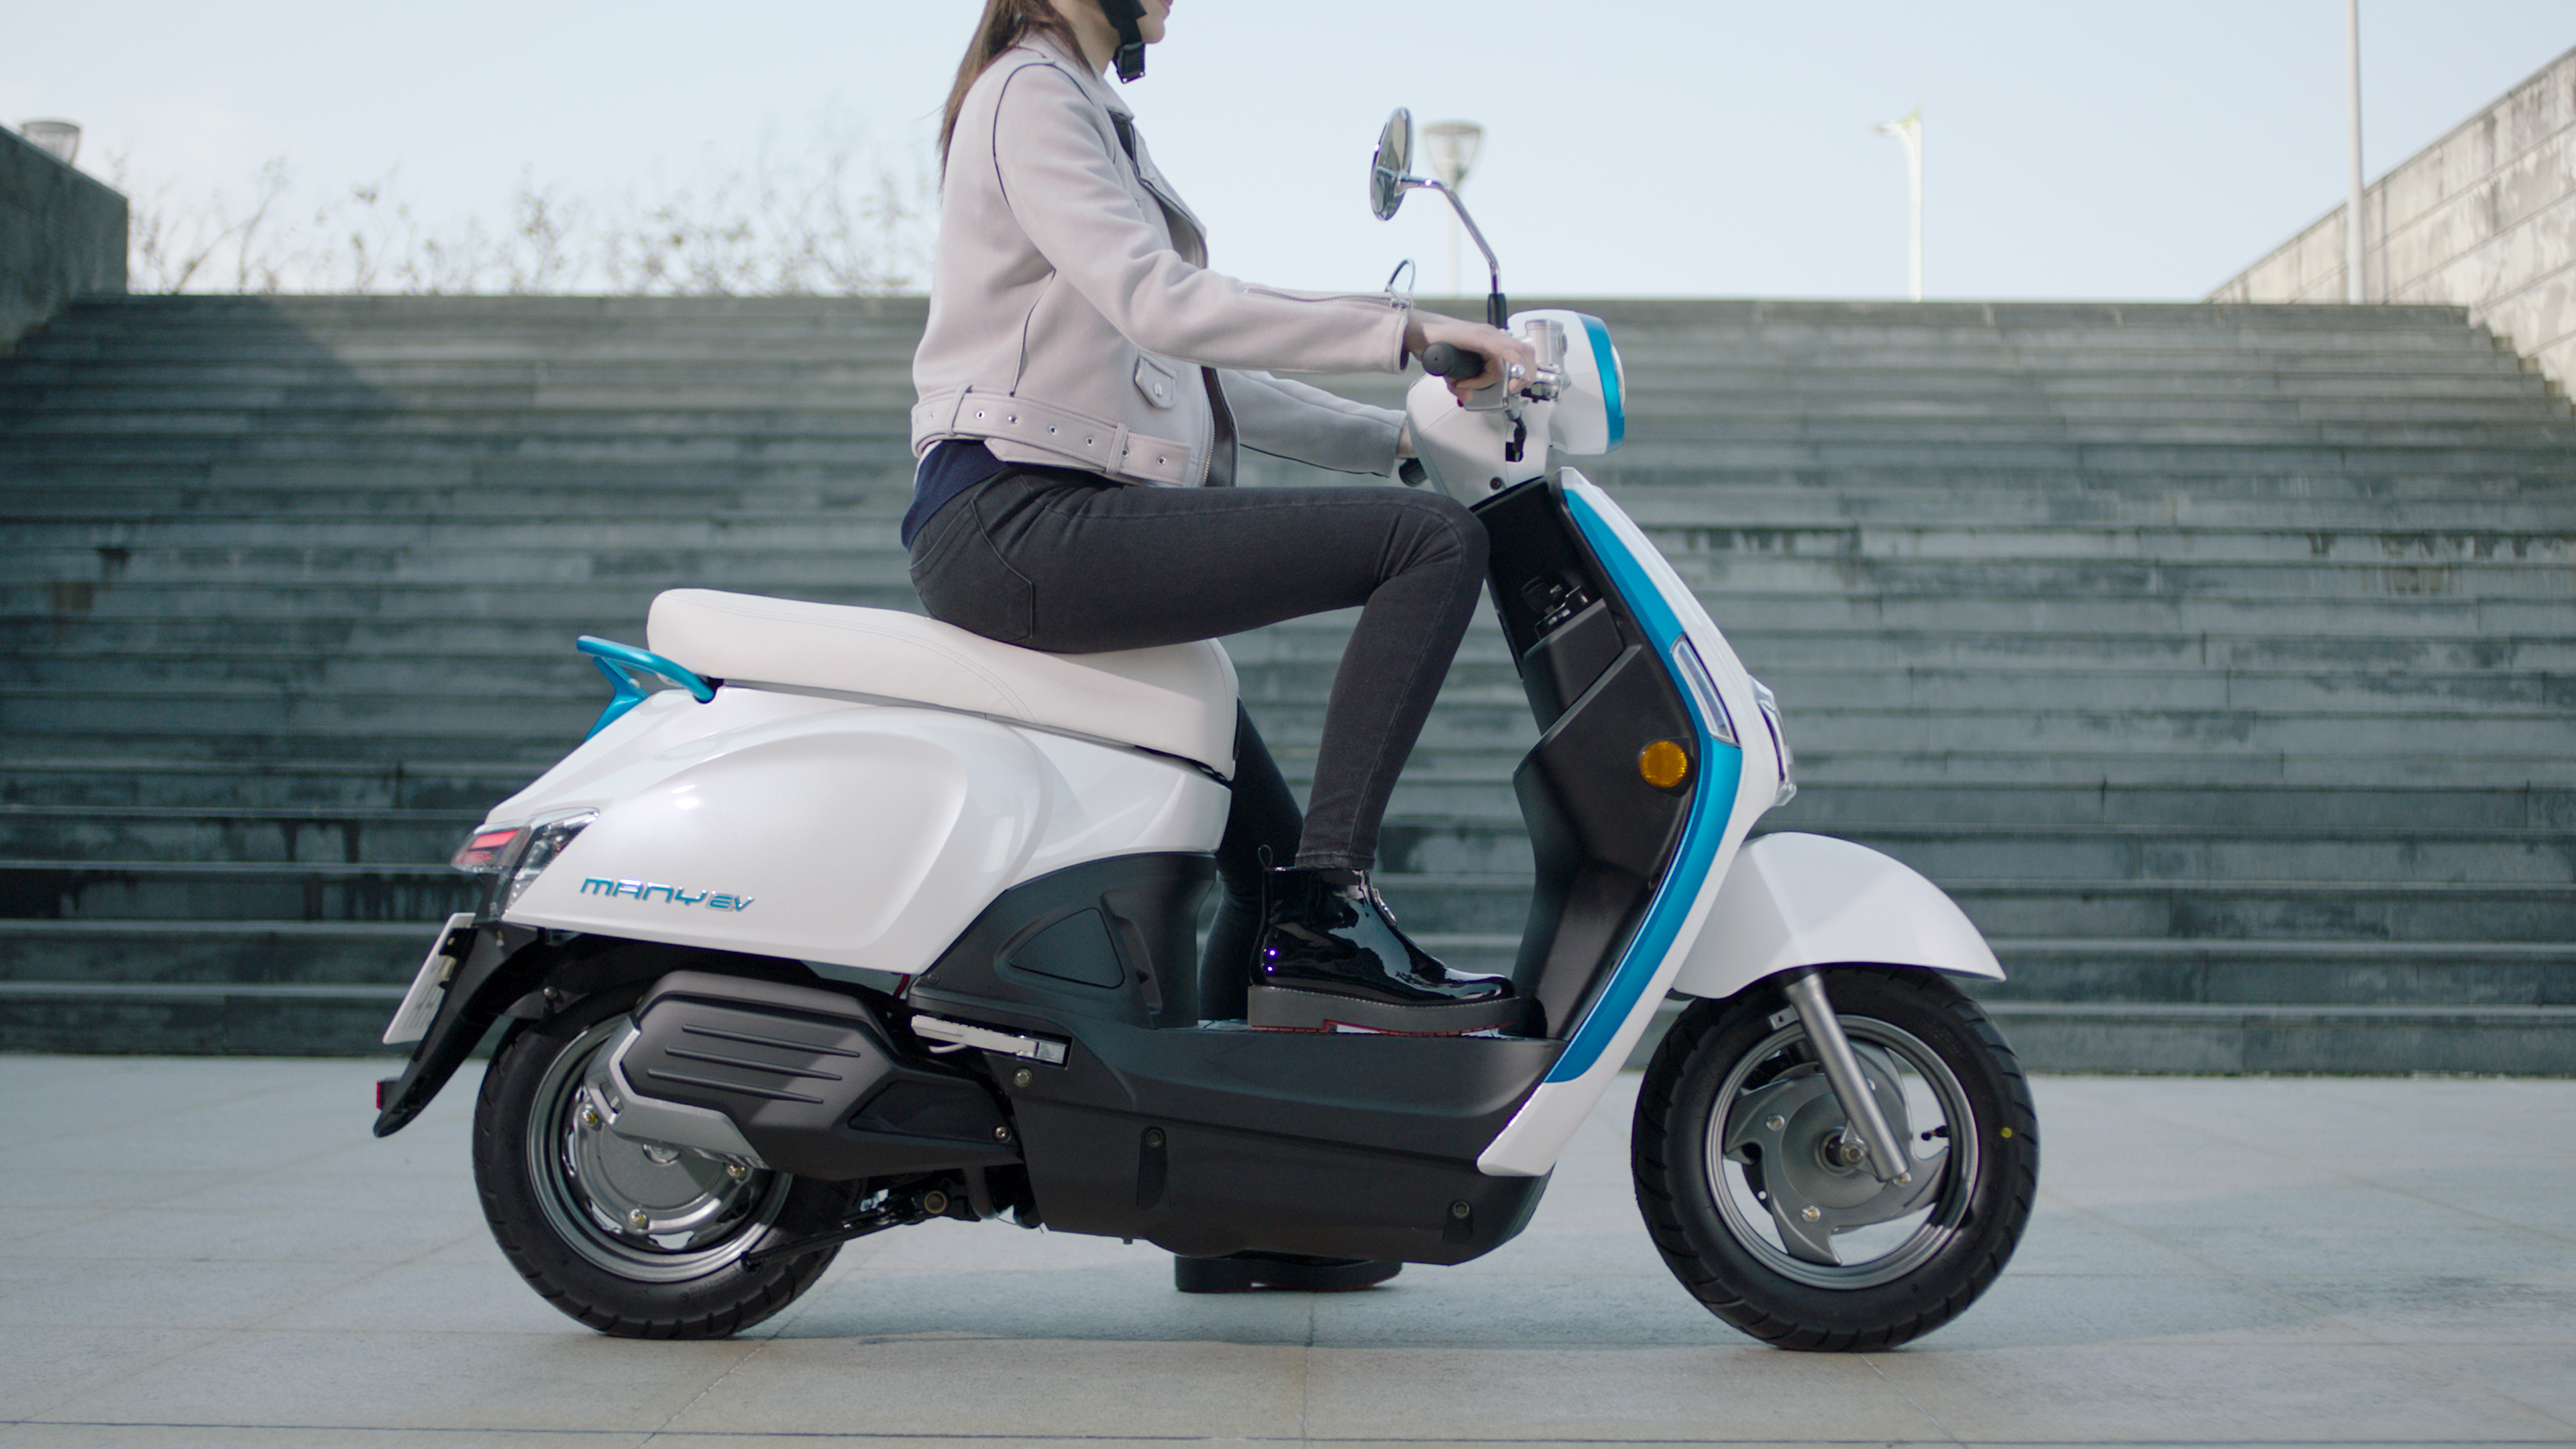 Kymco's new electric scooters could be the sign of a coming